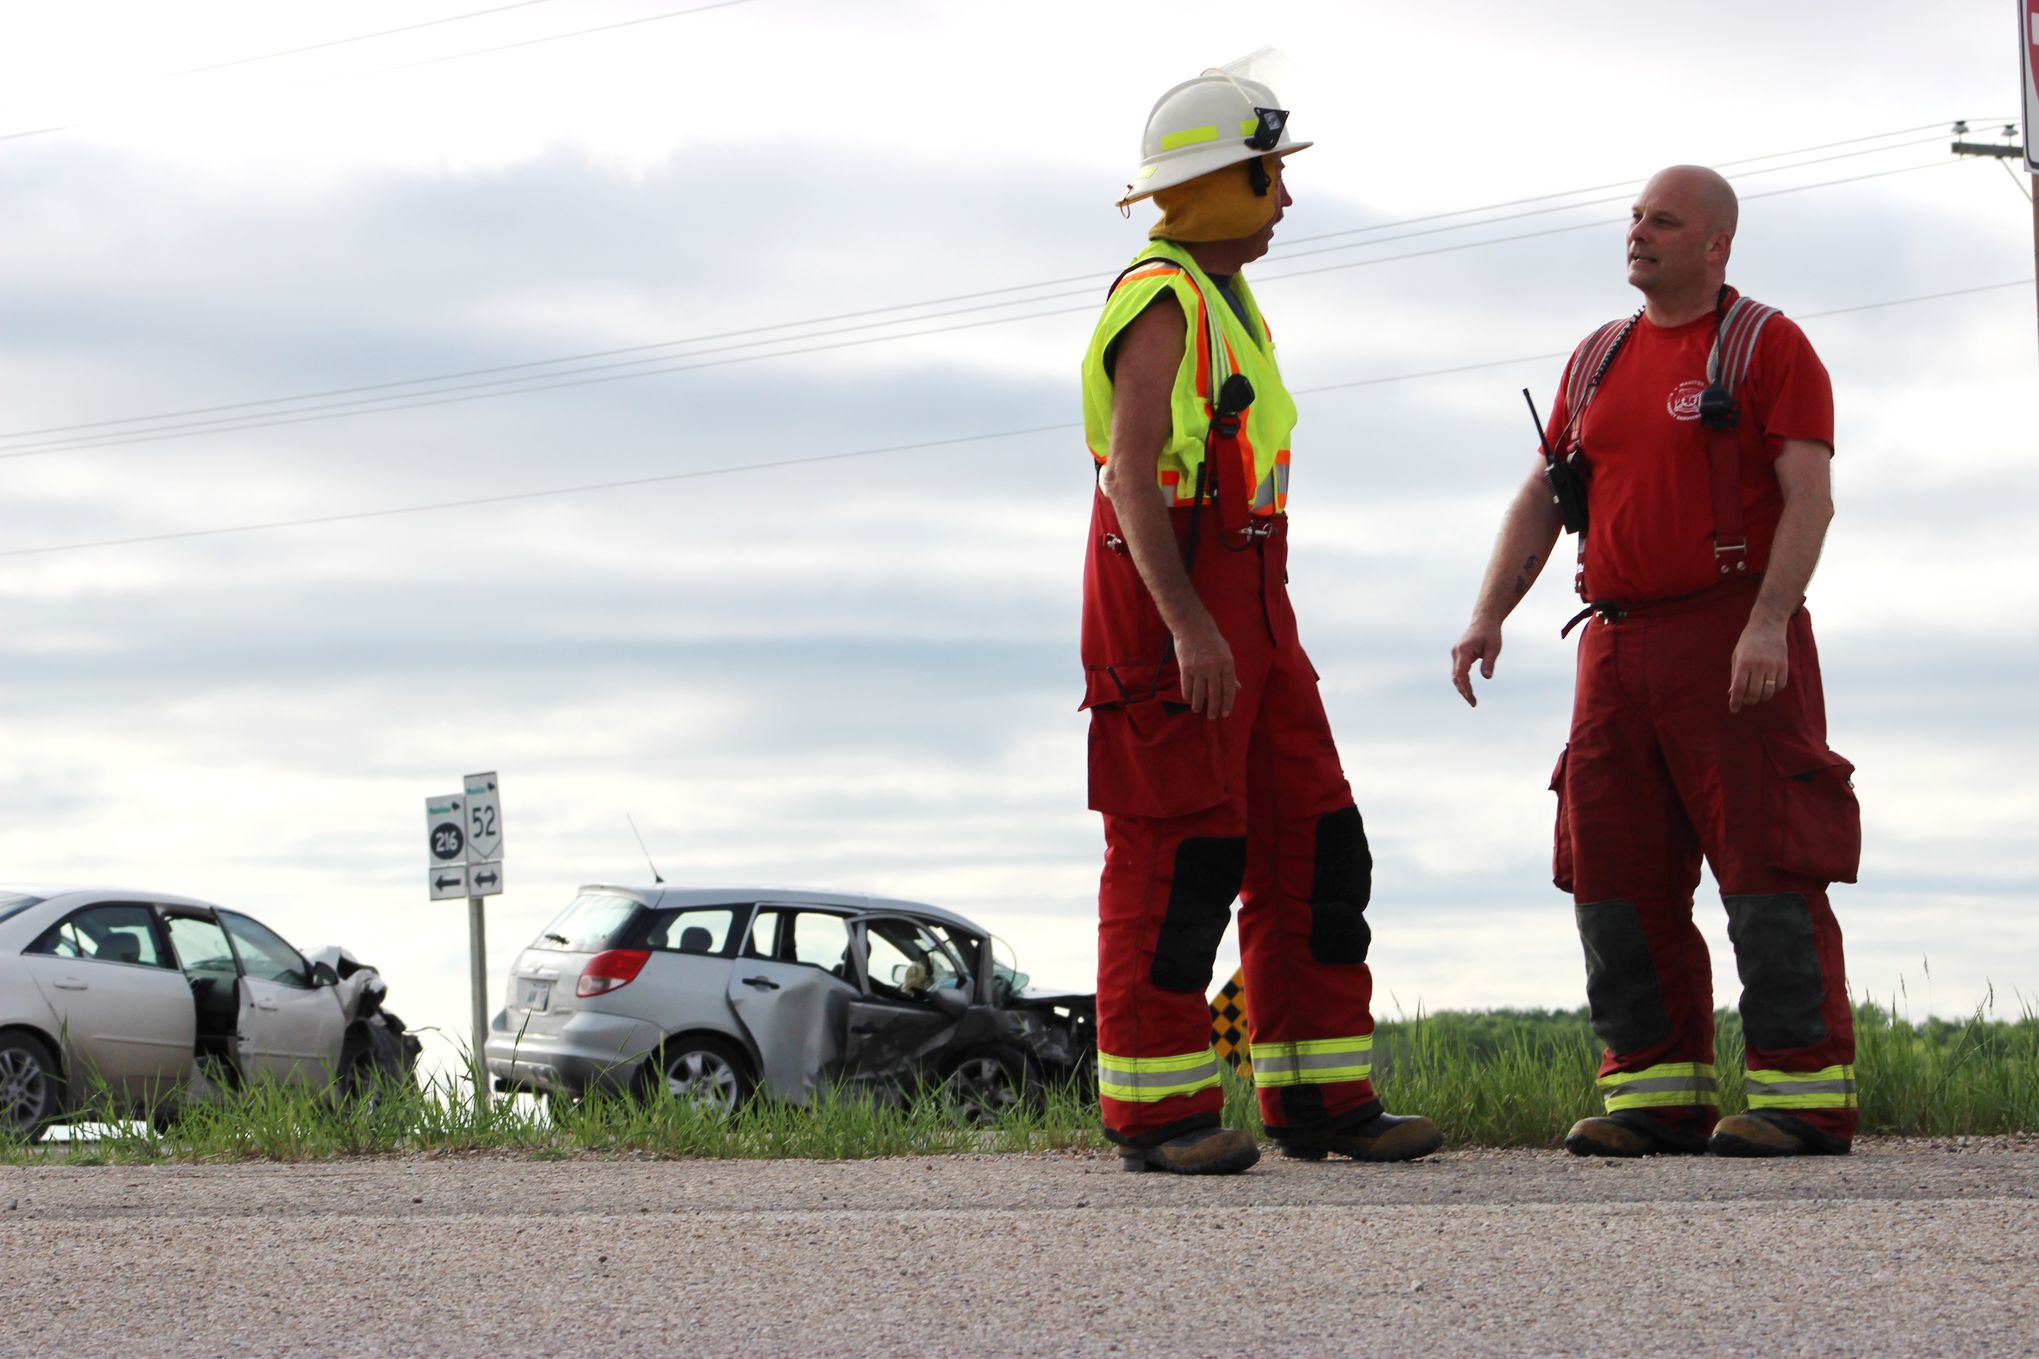 Kleefeld fire department members talk around 7 p.m. Thursday night at the scene of a two-vehicle collision at the intersection of Highway 52 and Provincial Road 216, north of Kleefeld. Police said Friday morning that a 6-year-old boy suffered critical injuries in the crash.